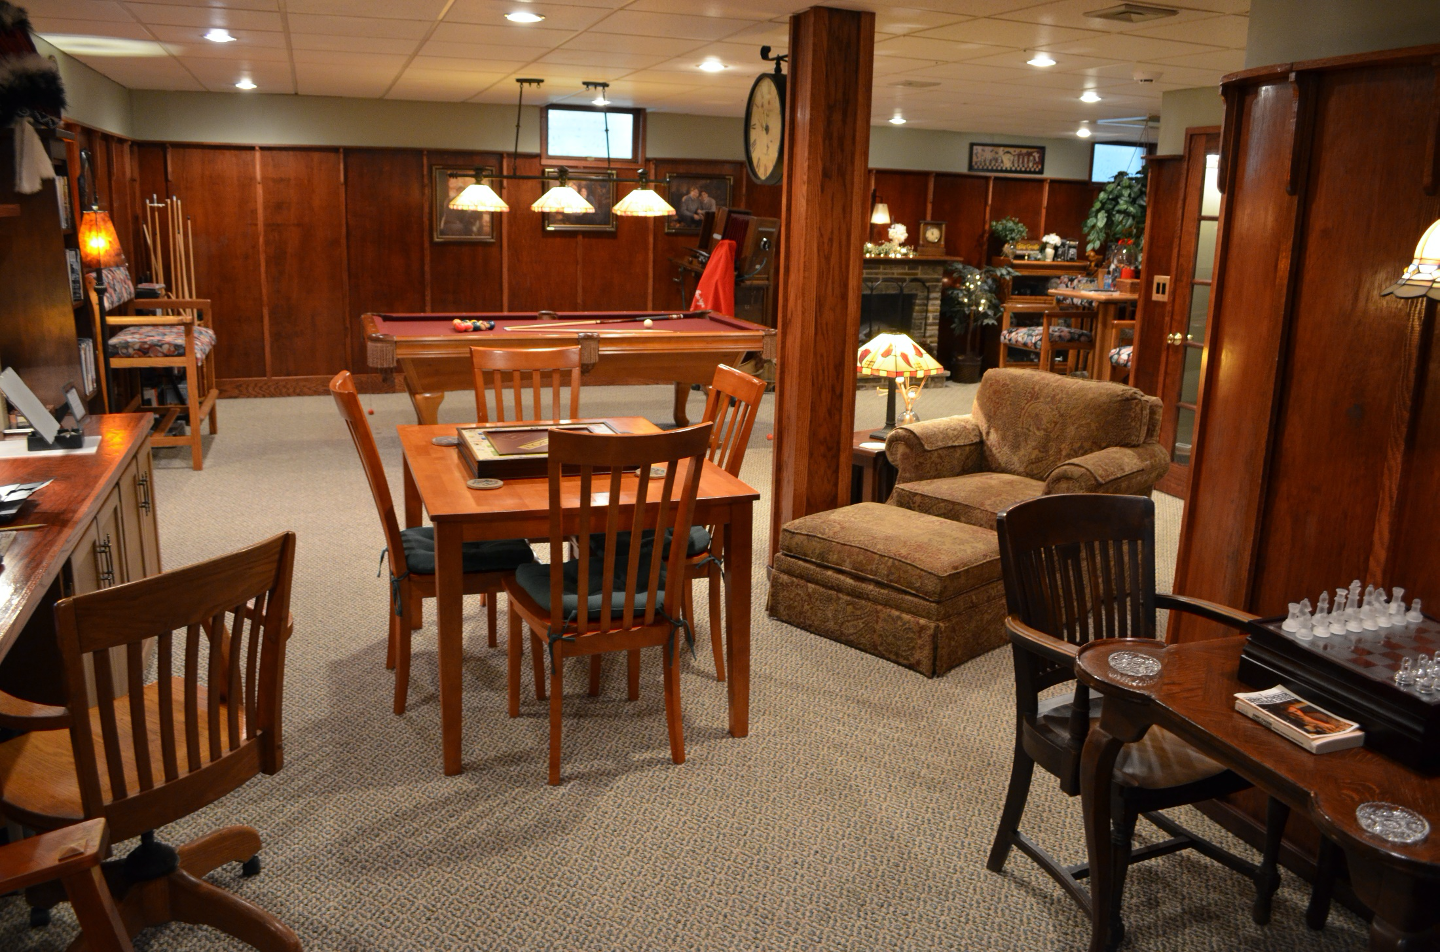 Vidw of Game Room showing three game tables, pool table, fire place, reading chair